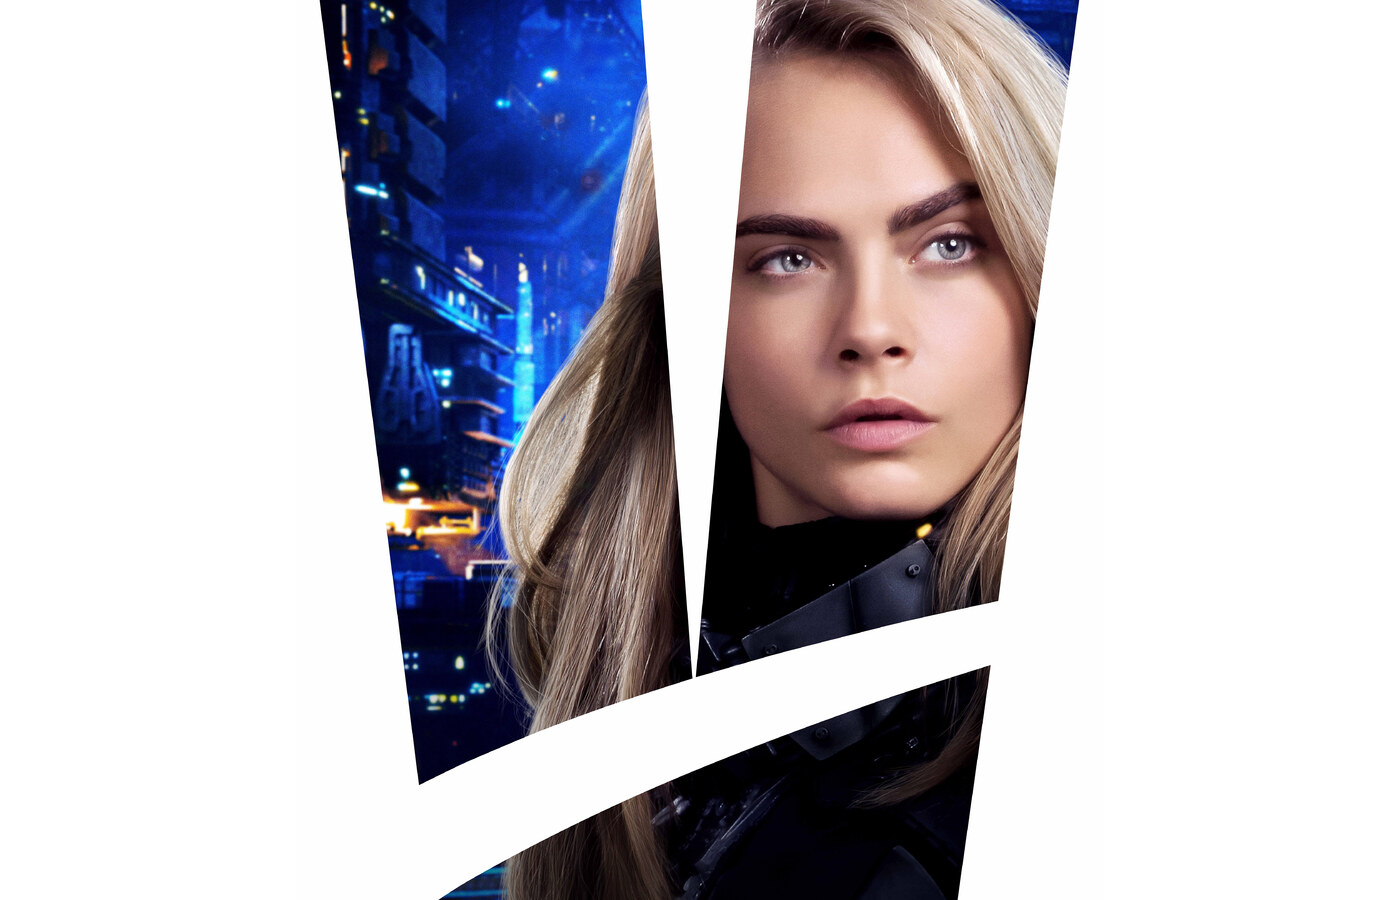 cara-delevingne-as-laureline-in-valerian-and-the-city-of-a-thousand-planets-ad.jpg